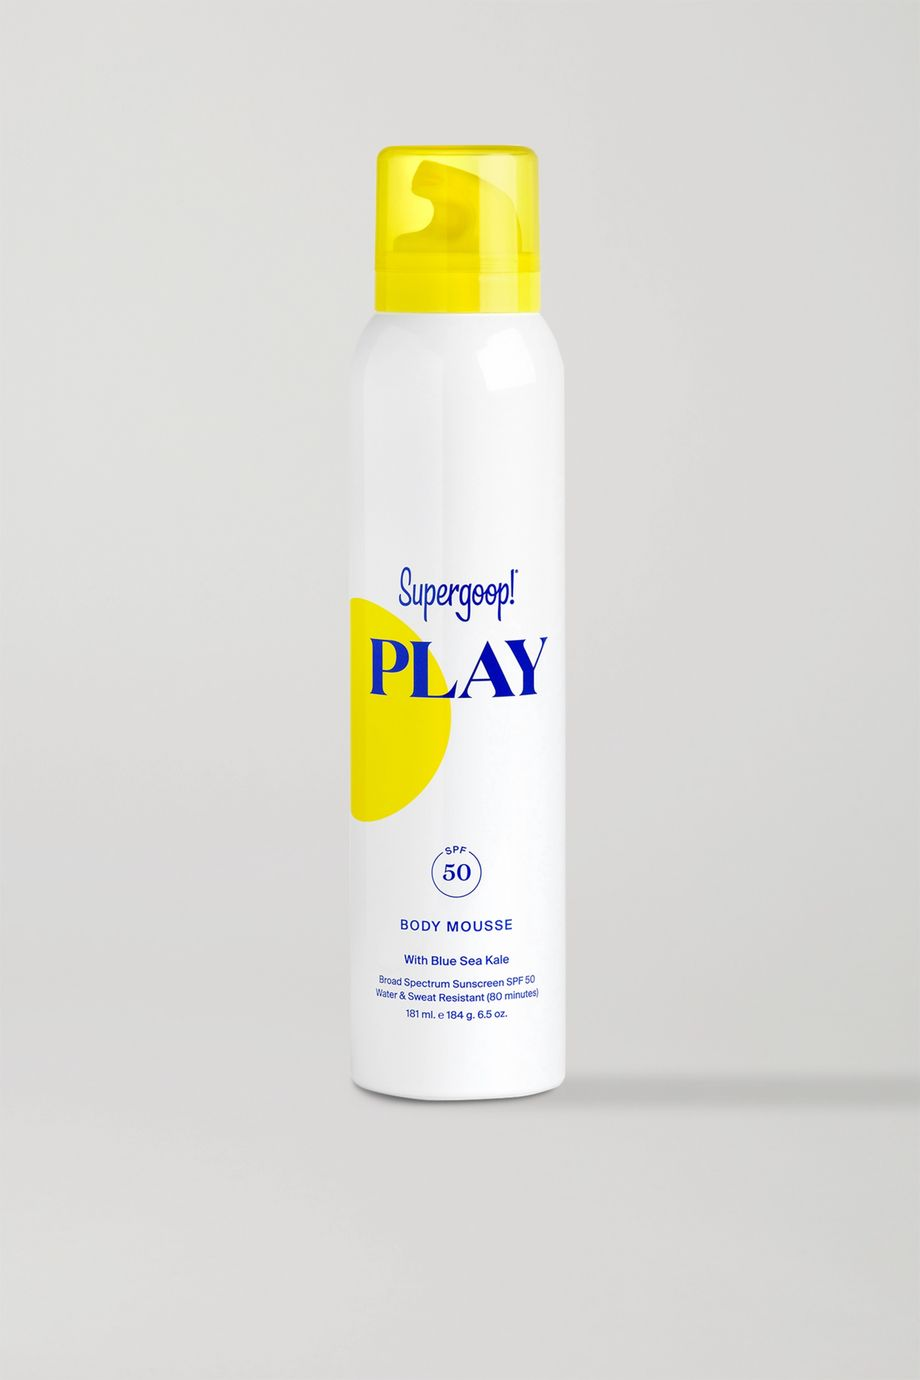 Supergoop! PLAY Body Mousse SPF50, 181ml